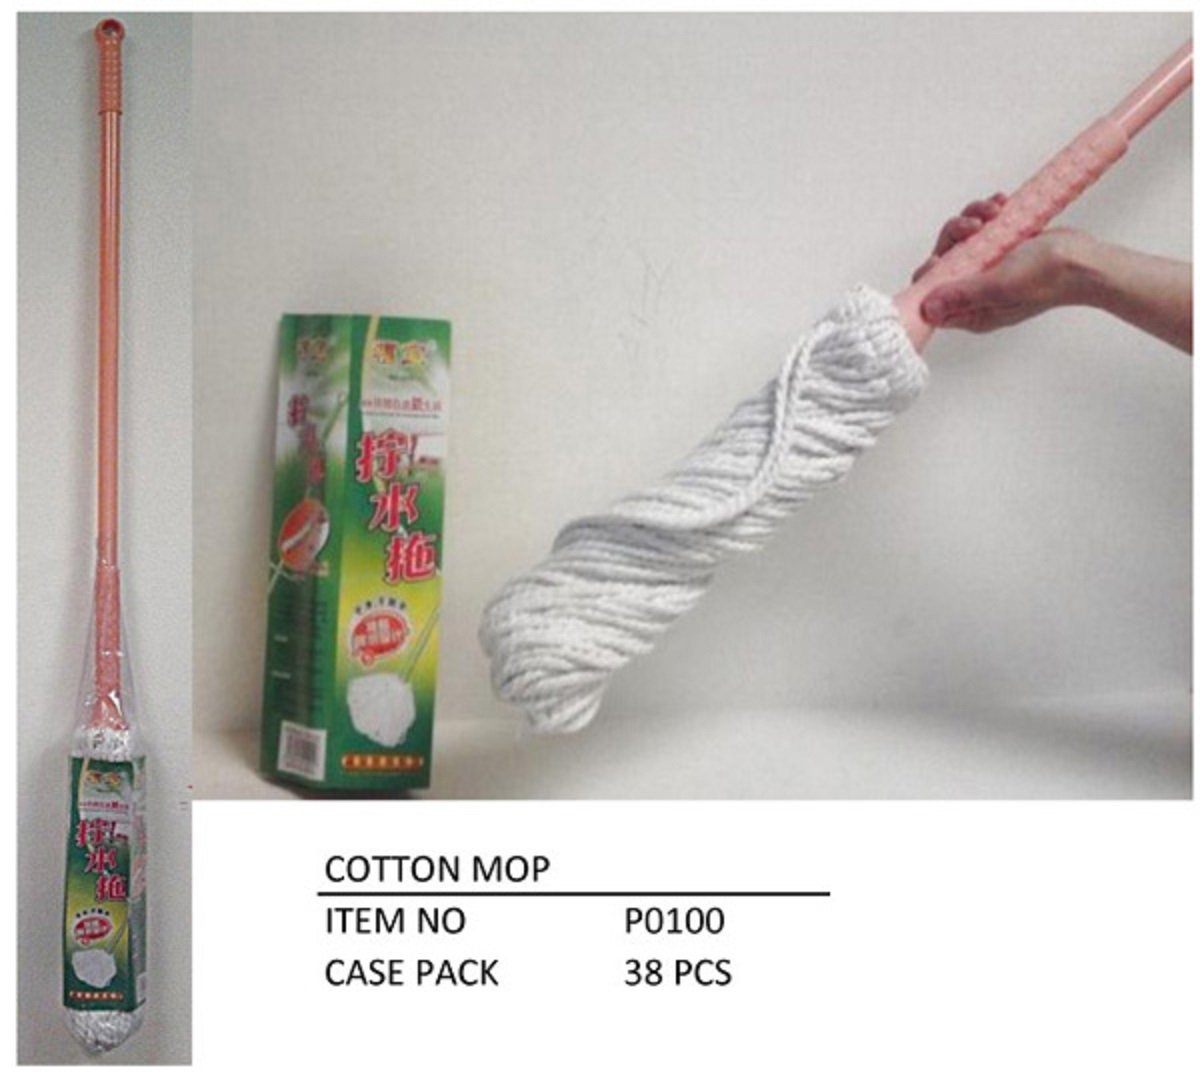 COTTON MOP, Case Pack of 38